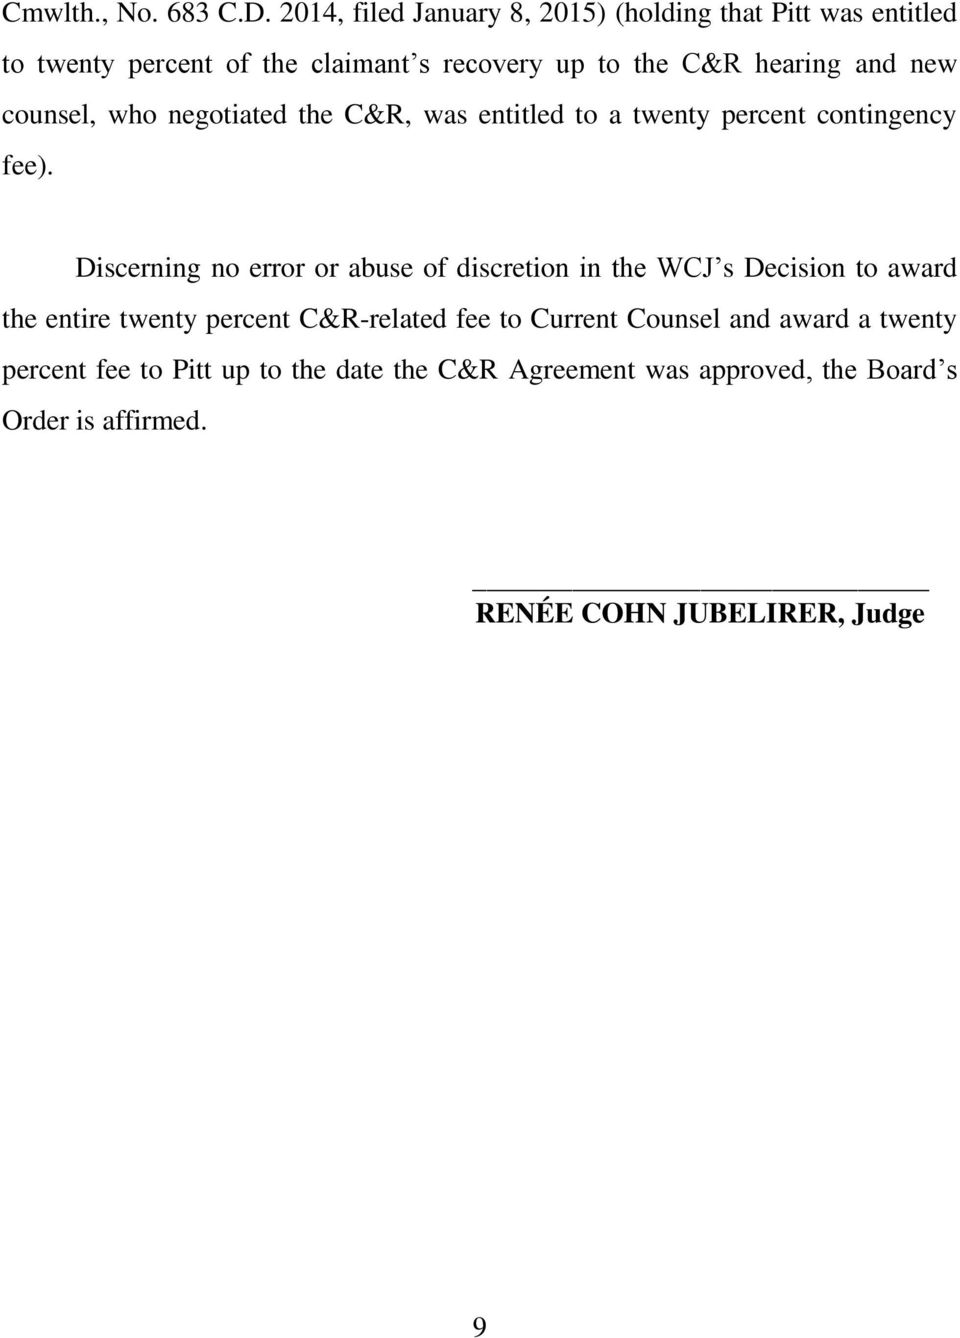 and new counsel, who negotiated the C&R, was entitled to a twenty percent contingency fee).